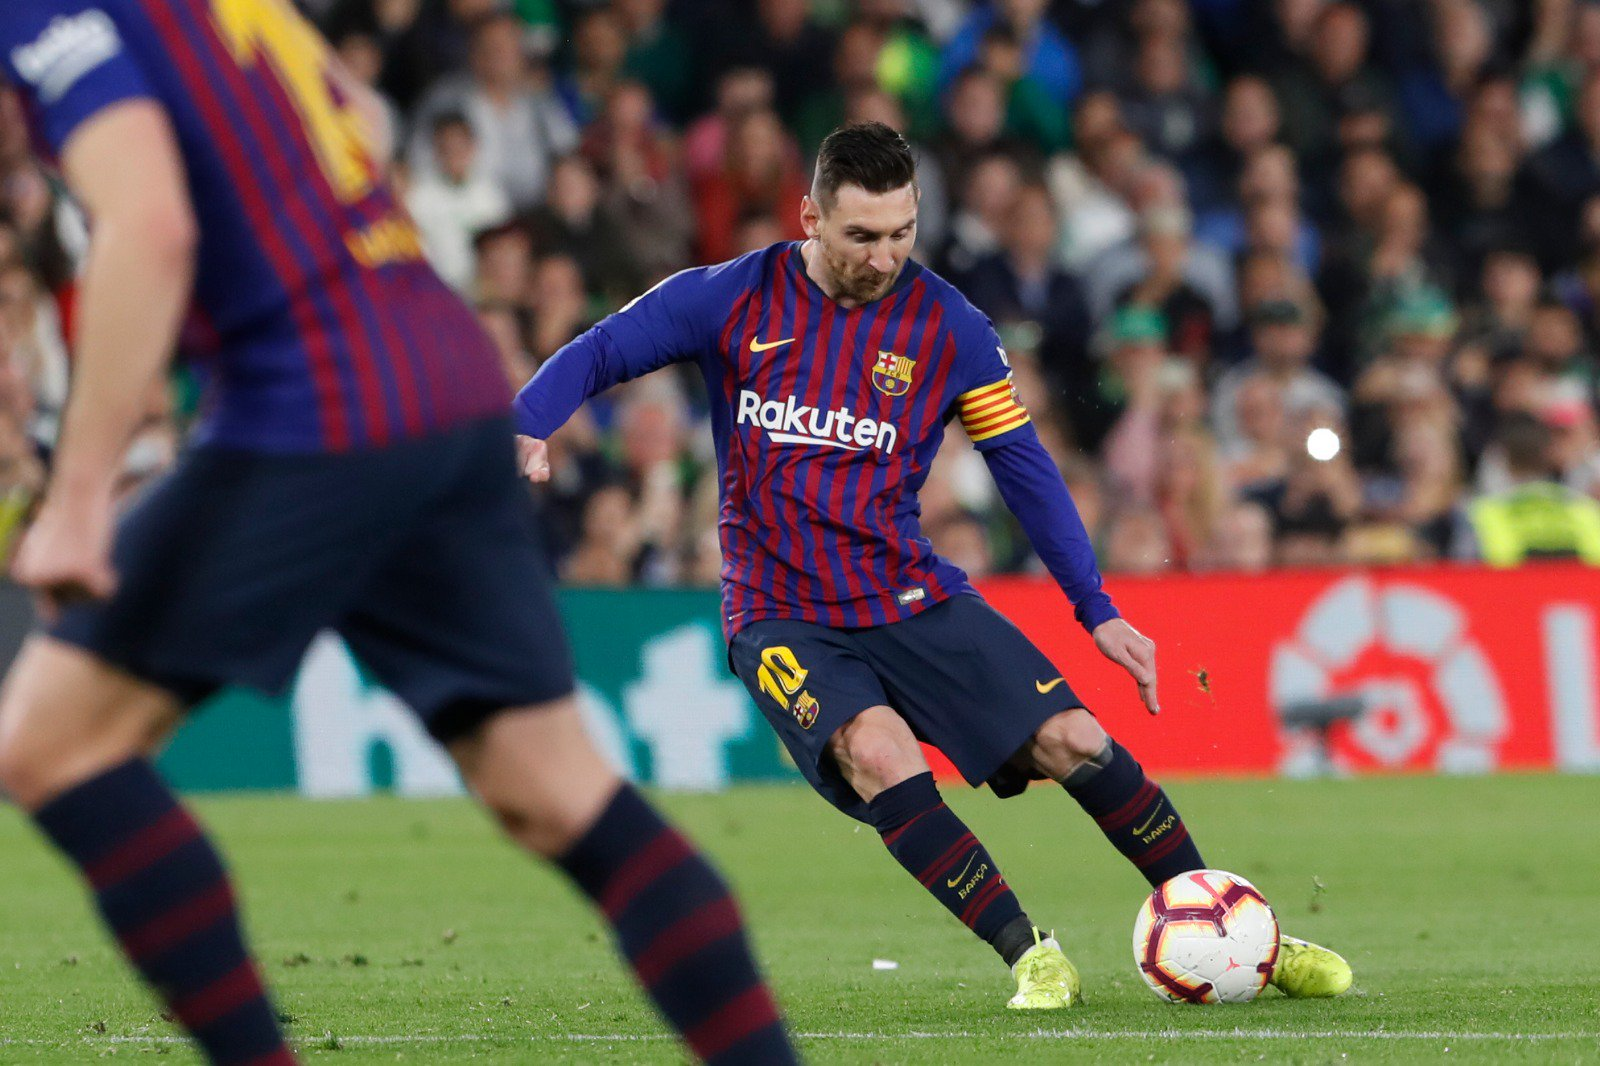 ��⚽ What a strike from Leo Messi! �� Bang in the top corner. Beautiful. Just beautiful. ���� #BetisBarça (0-1) https://t.co/cWOnVSdN86